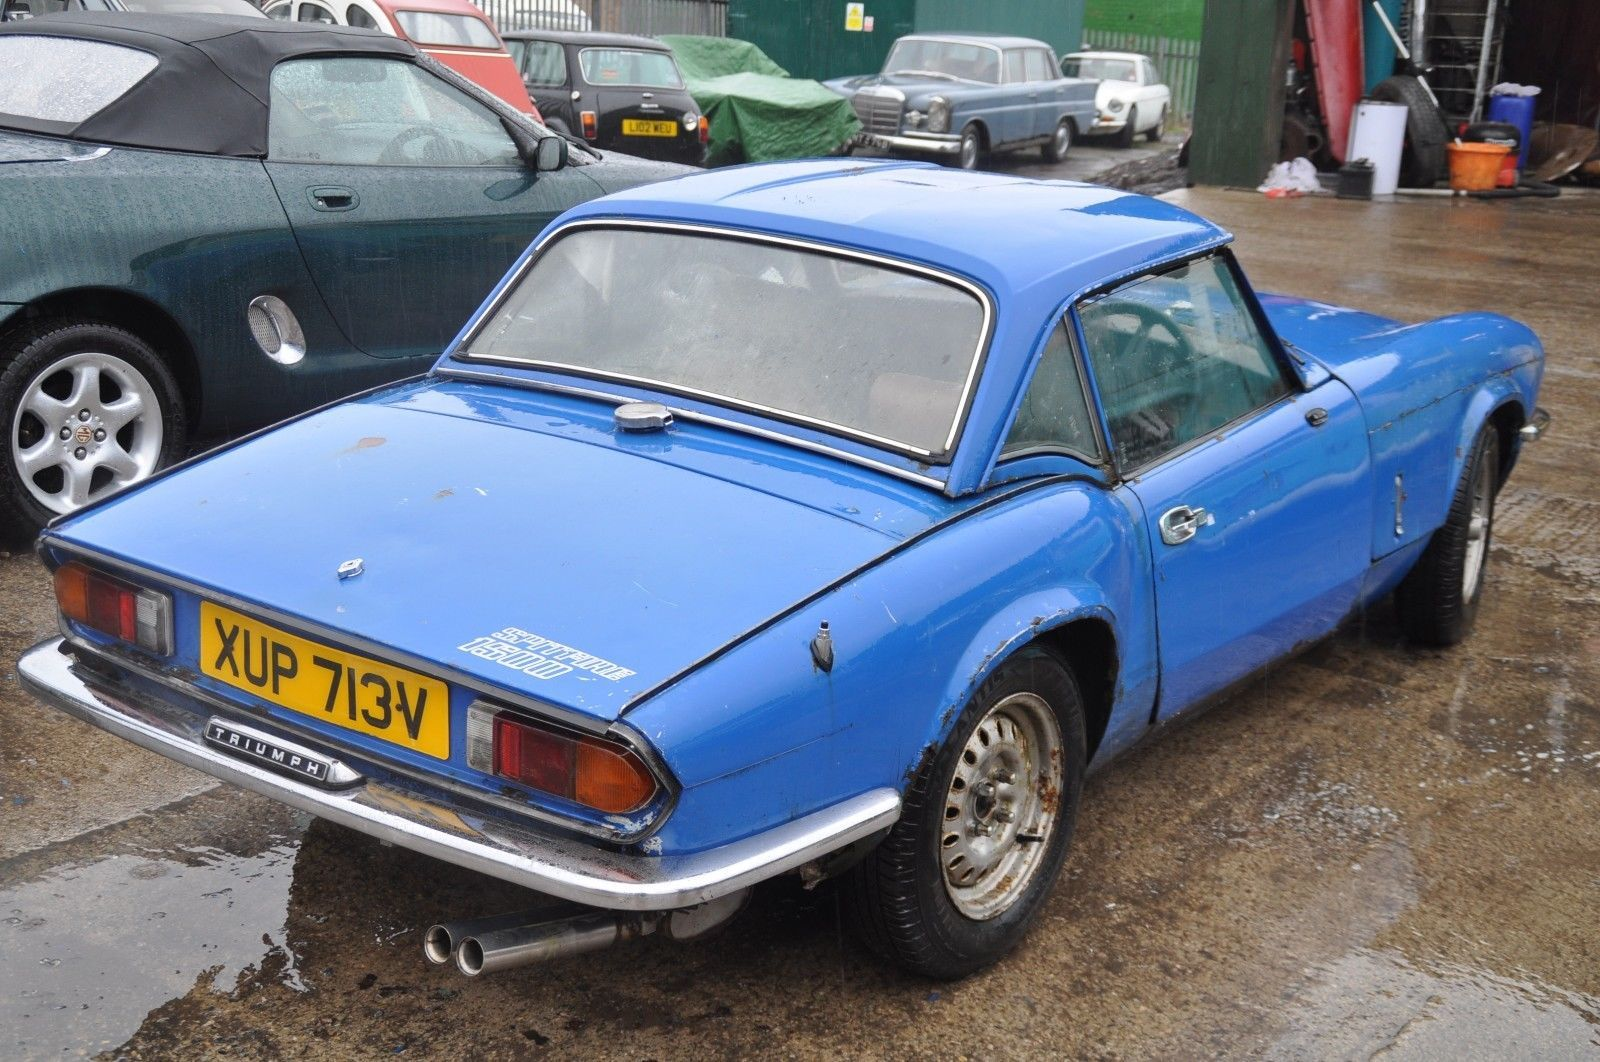 1980 triumph spitfire 1500 cheap project car | Triumph spitfire ...